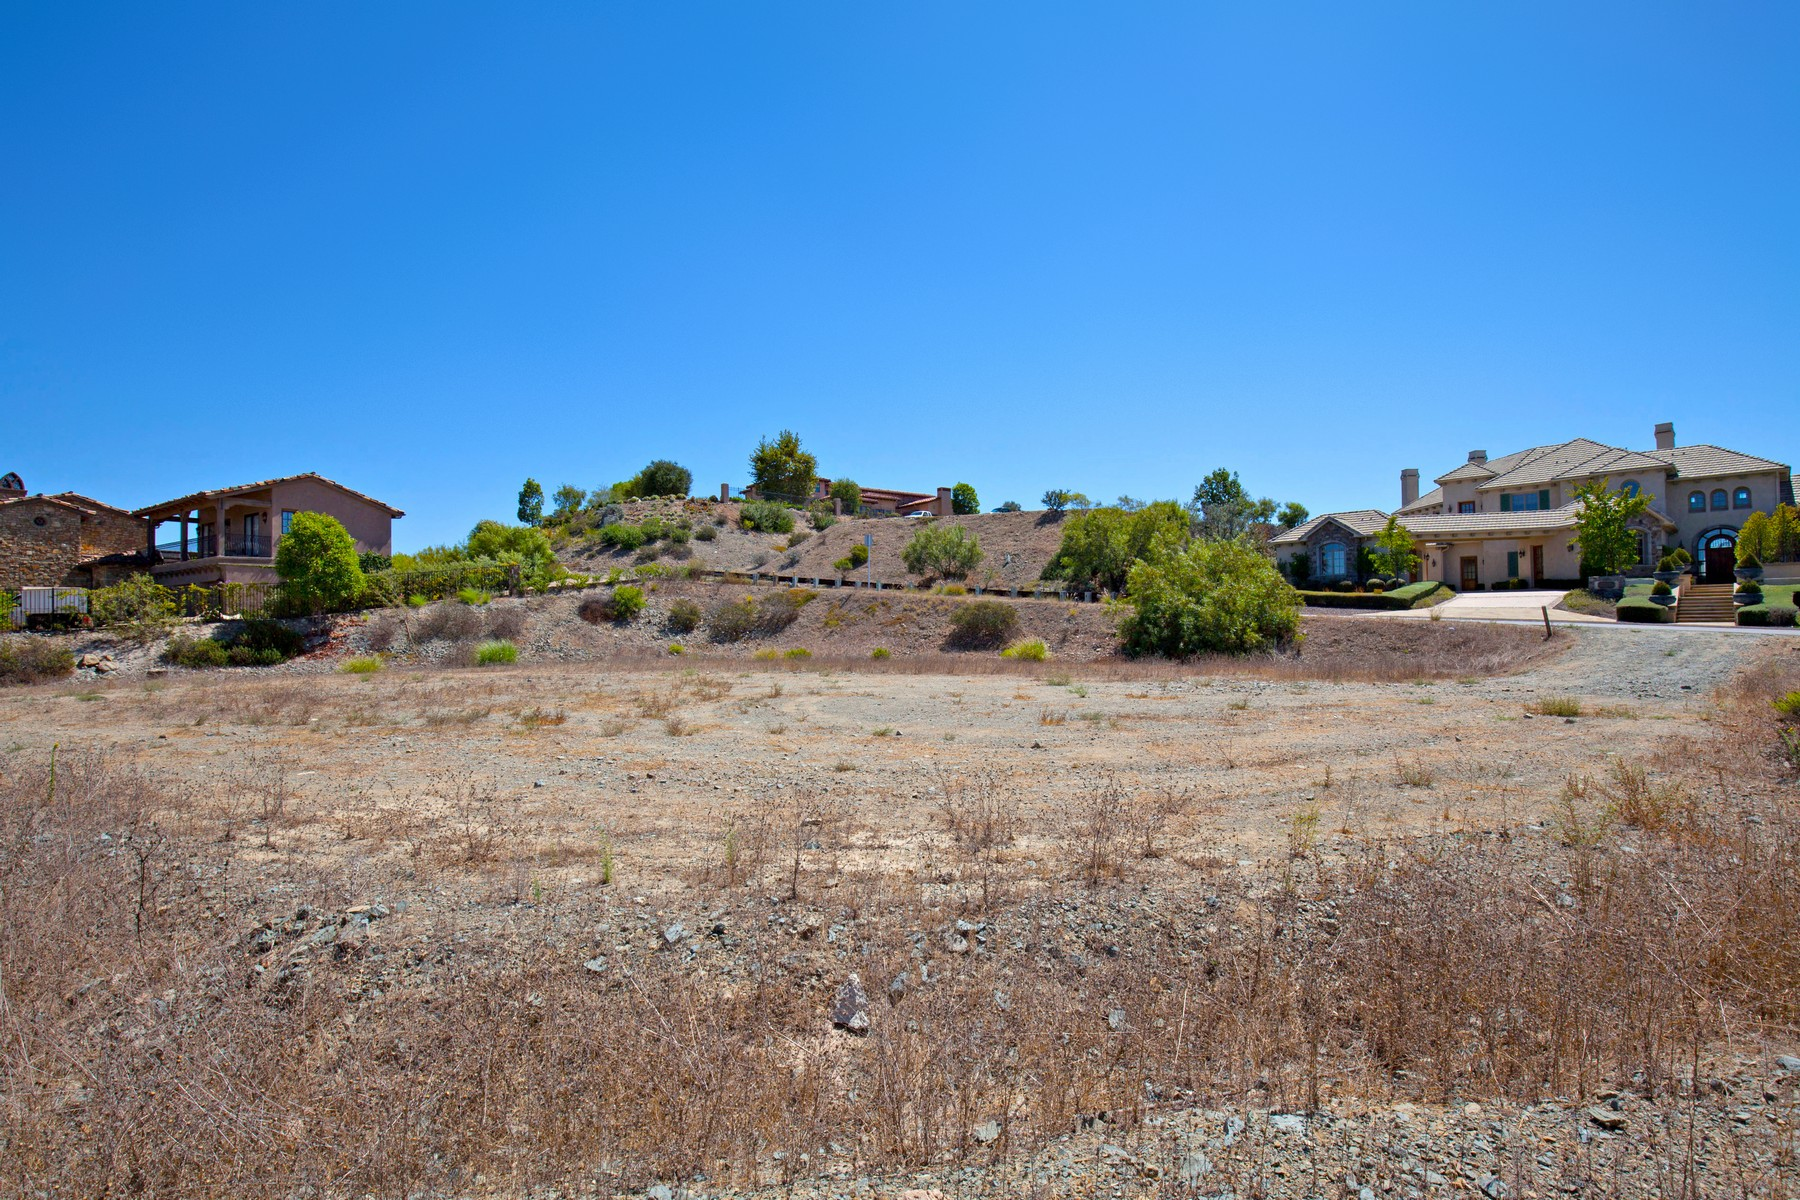 Additional photo for property listing at Via Ambiente lot 15 Via Ambiente 15 Rancho Santa Fe, California 92067 Estados Unidos